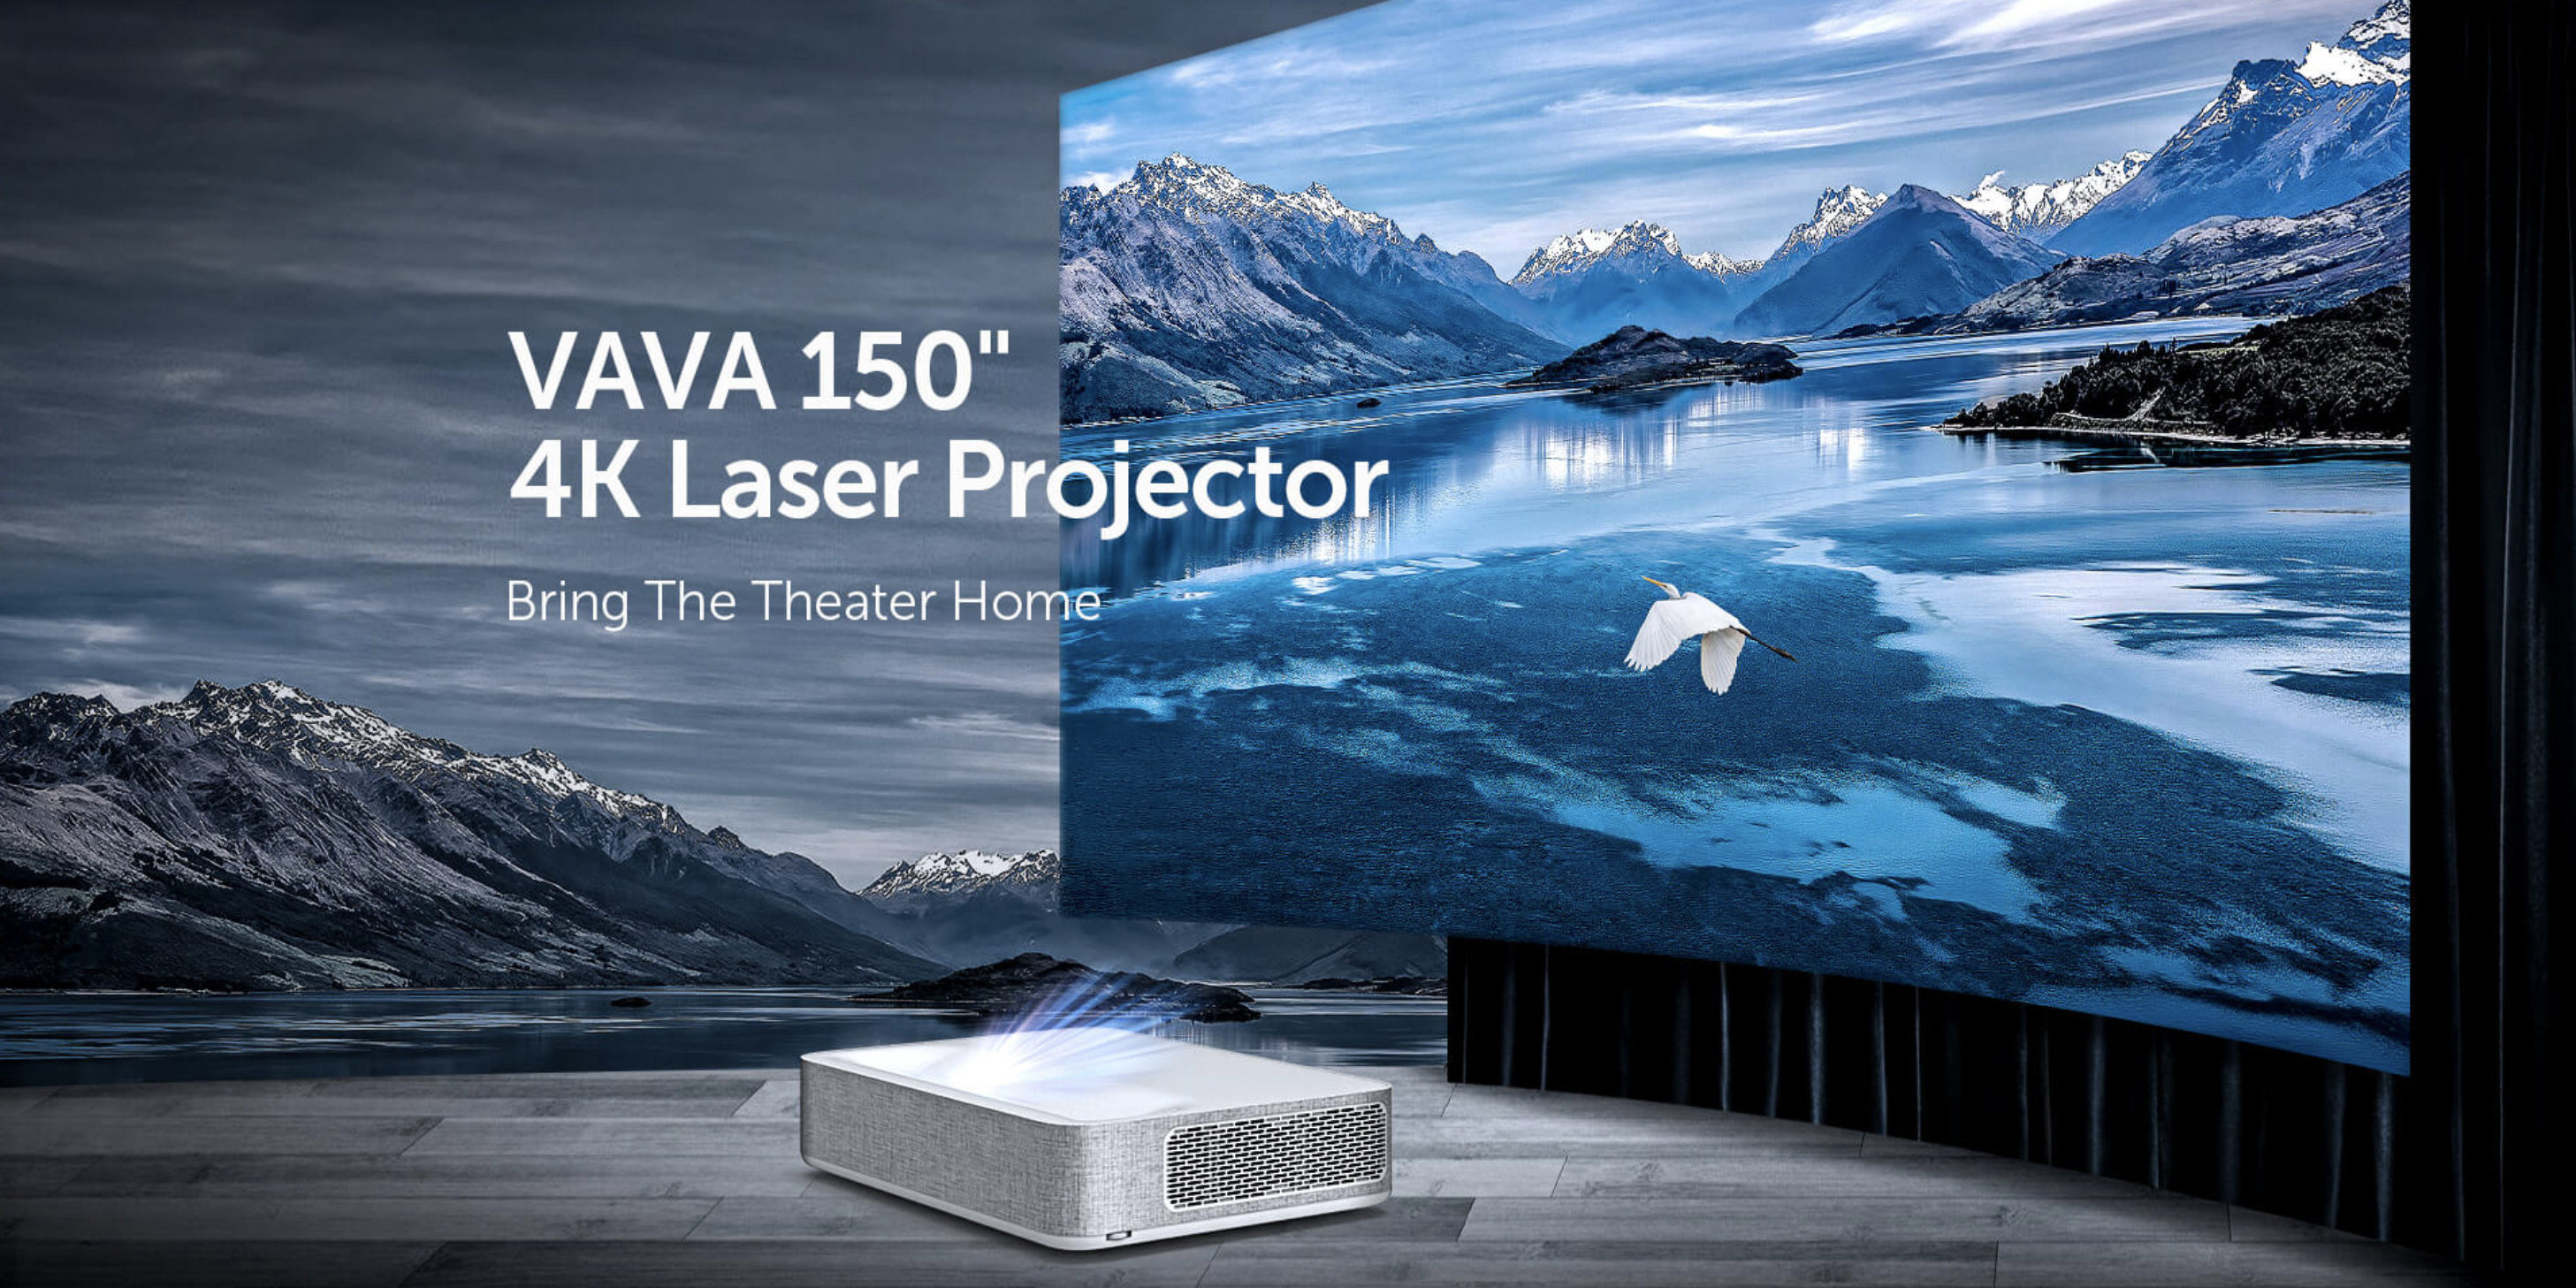 Vava shakes up the market with a new 4K HDR short-throw projector for $3,500